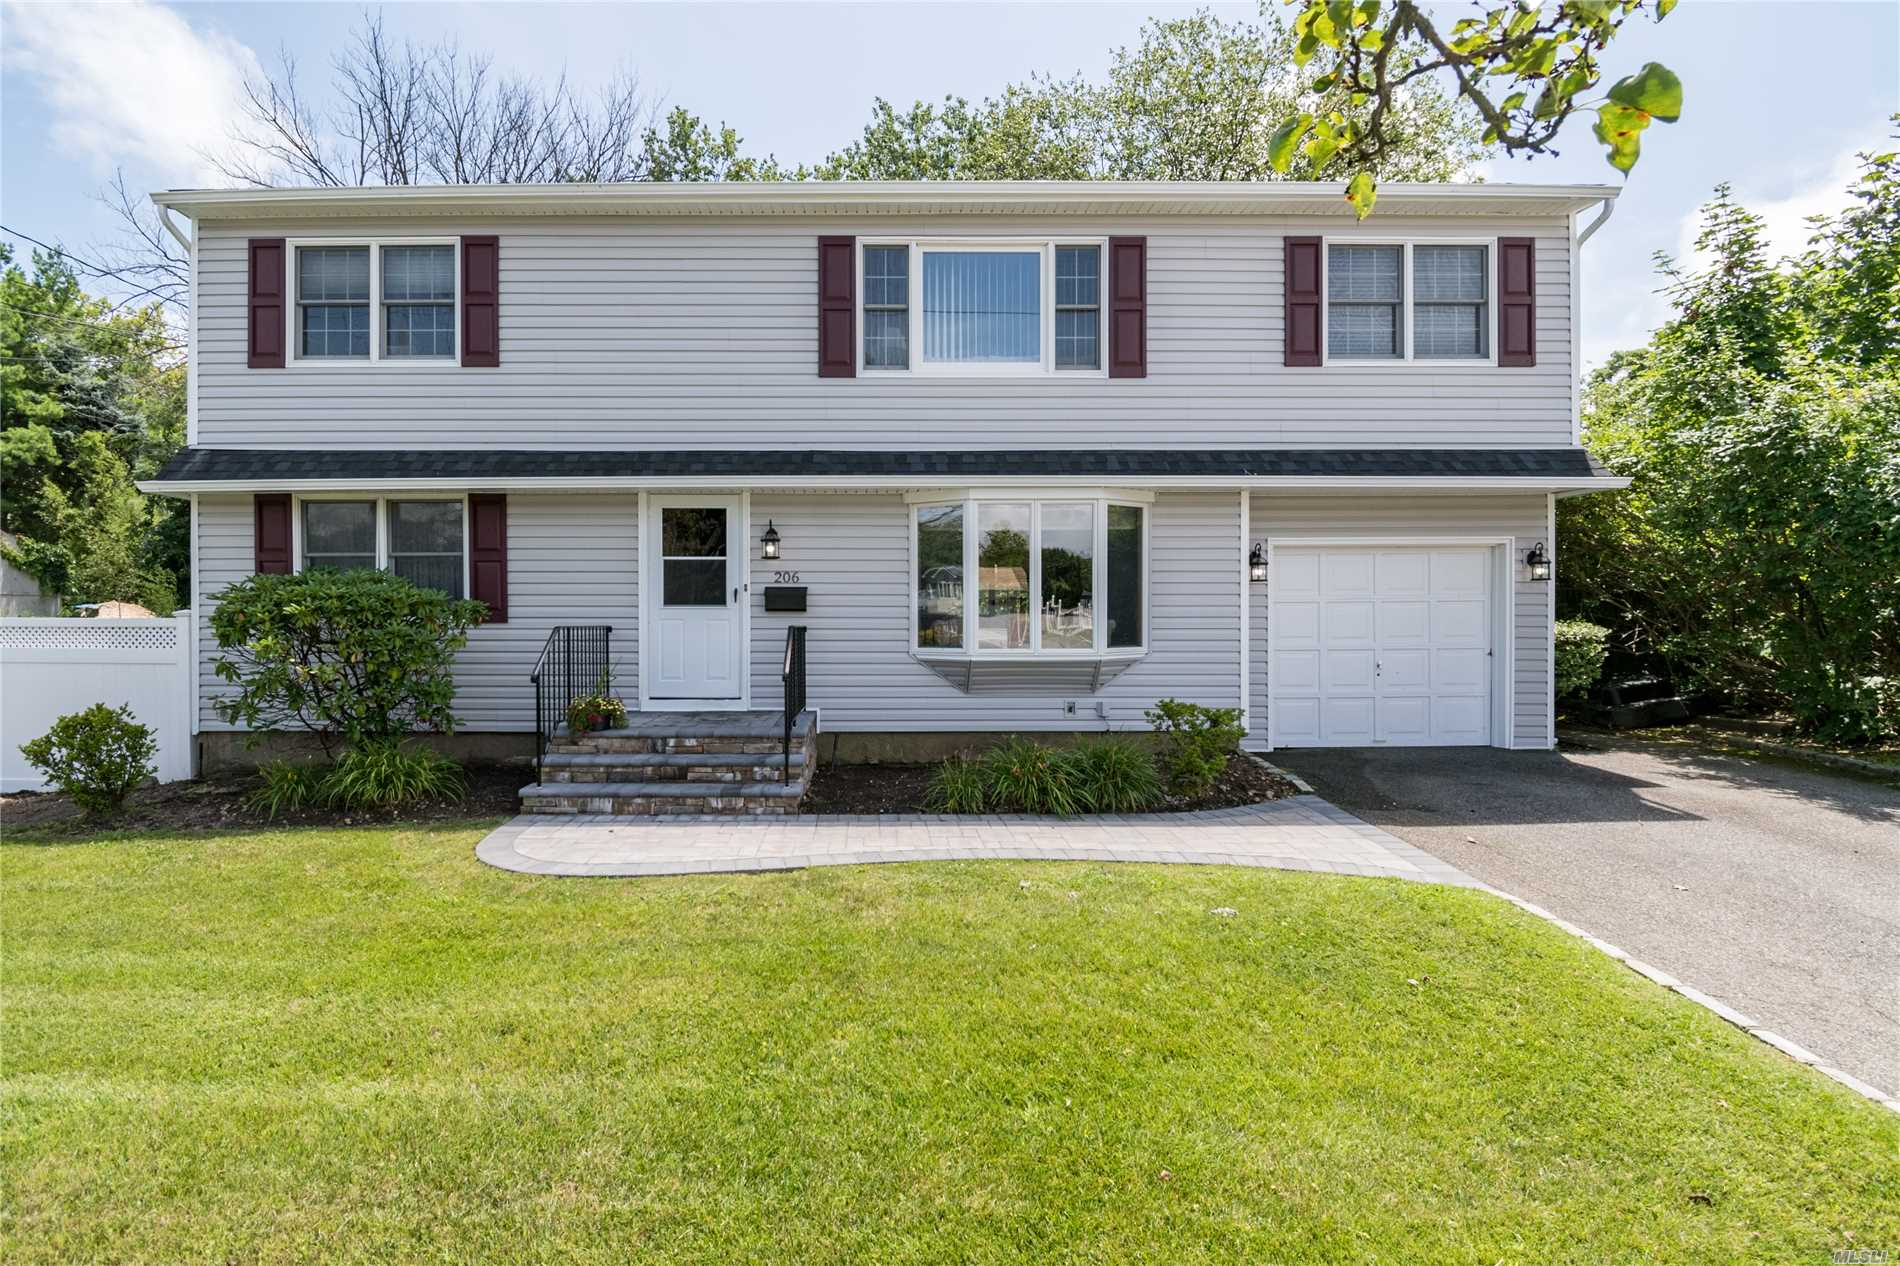 Possible Mother/Daughter On Oversized, Park-Like Lot On Dead End Street In S. Farmingdale. Close To Woodward/Howitt/Fhs, Allen Park, The Preserve, Parkways. Walk To Parks, Shopping. 9 Rooms, 4/5 Br, 2 Full Ba, 2 Full Eik, 2 Full Lr, Full Basement, 1/2 Finished, 2 Car Driveway, 1 Car Att Gar. 3-Zone Gas Heat, Separate New Hw Heater, Baseboard Hw Heat, Cac, Laundry And Furnace Room, Andersen Windows, Hardwood Floor, Master Br With Huge Walk In Closet. Brand New Vinyl Siding & Stonework.